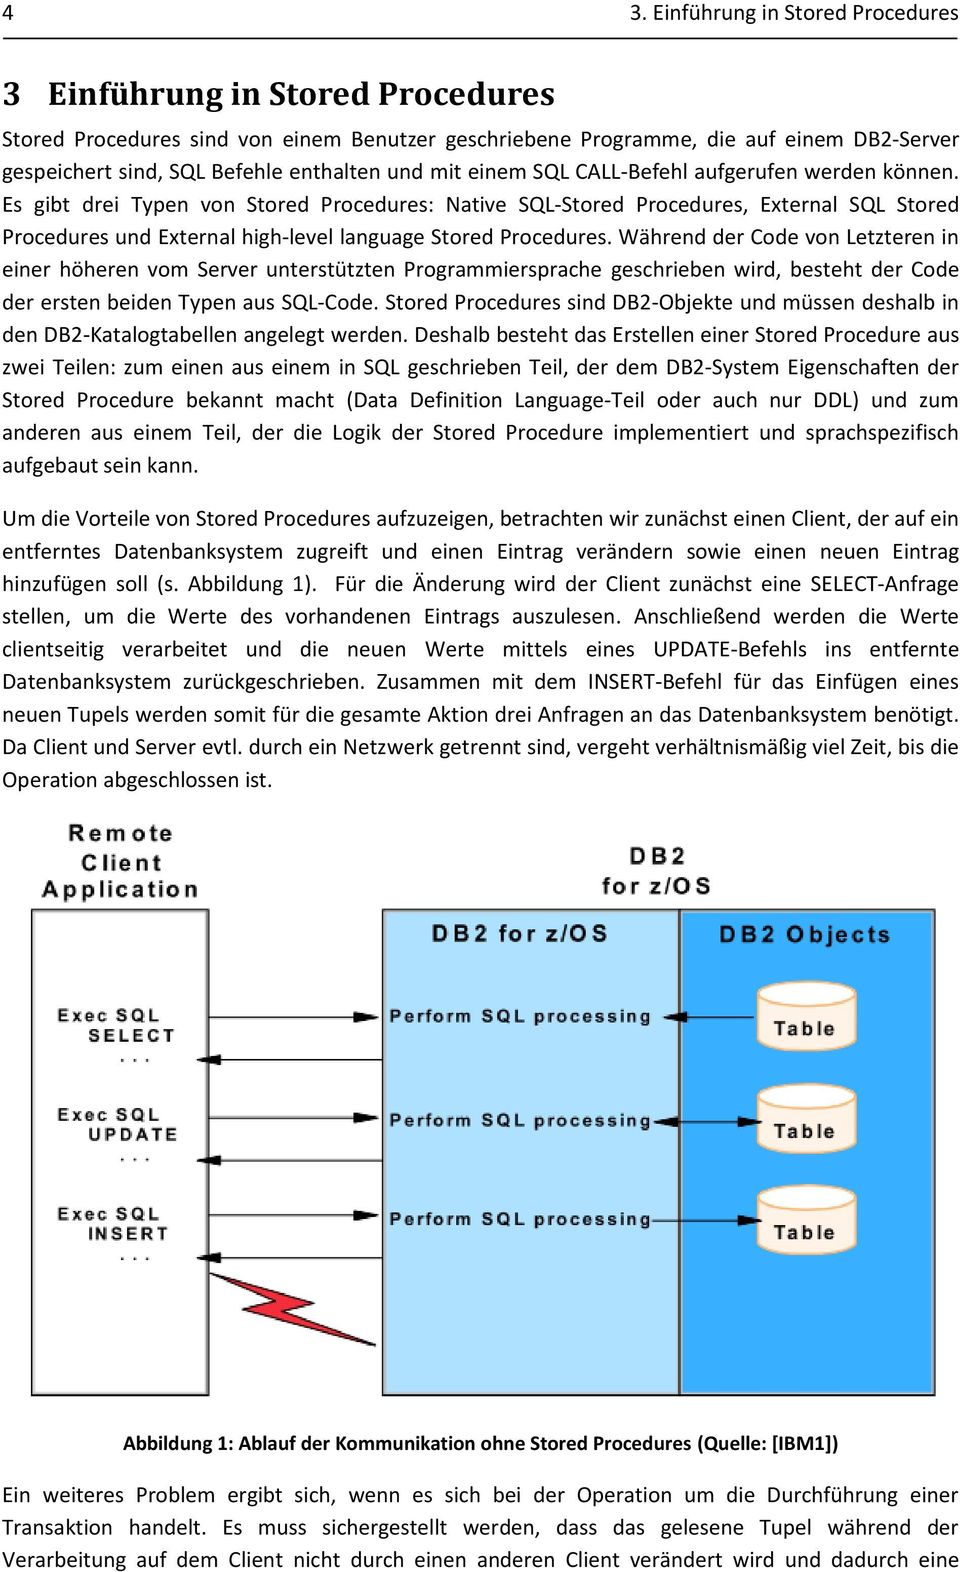 Es gibt drei Typen von Stored Procedures: Native SQL-Stored Procedures, External SQL Stored Procedures und External high-level language Stored Procedures.